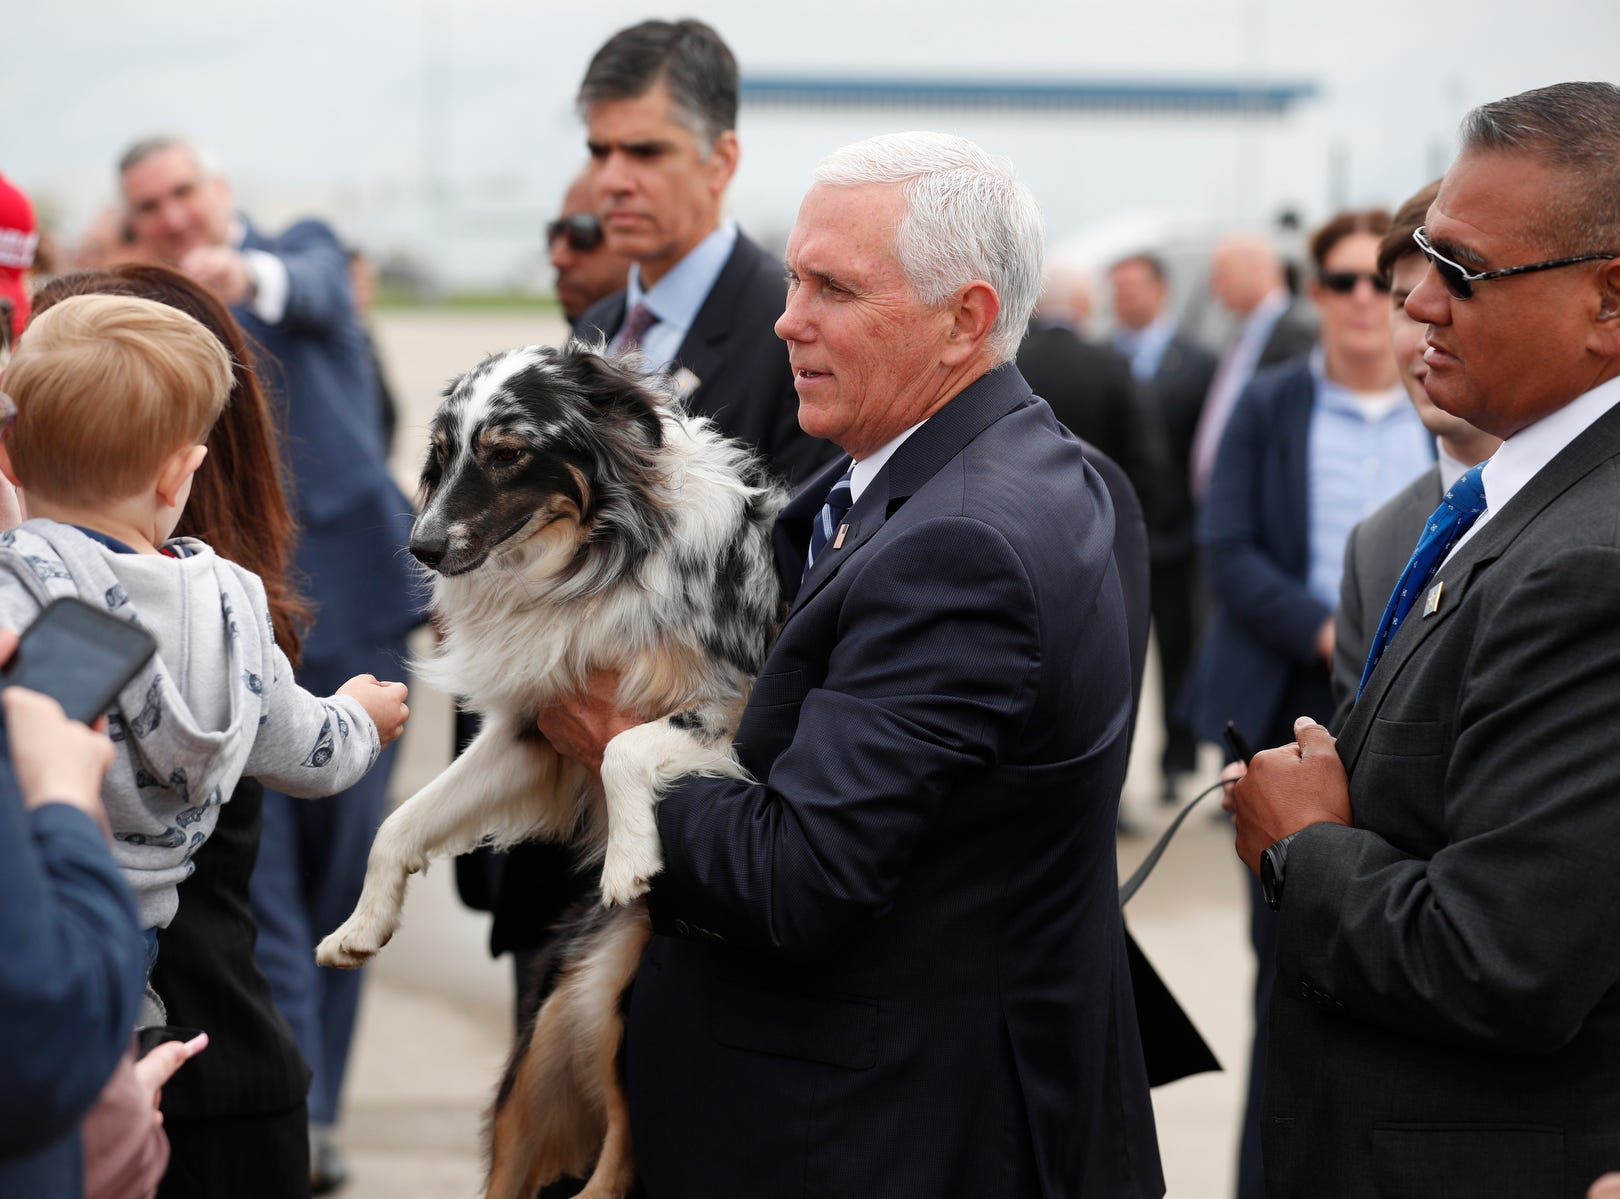 Vice President Mike Pence holds up his dog, Harley for a young boy in the crowd to pet. A crowd greeted the vice president at the Indianapolis International Airport on Friday, April 26, 2019. Pence was in town to speak before the 2019 NRA Meeting and Exhibit at Lucas Oil Stadium.